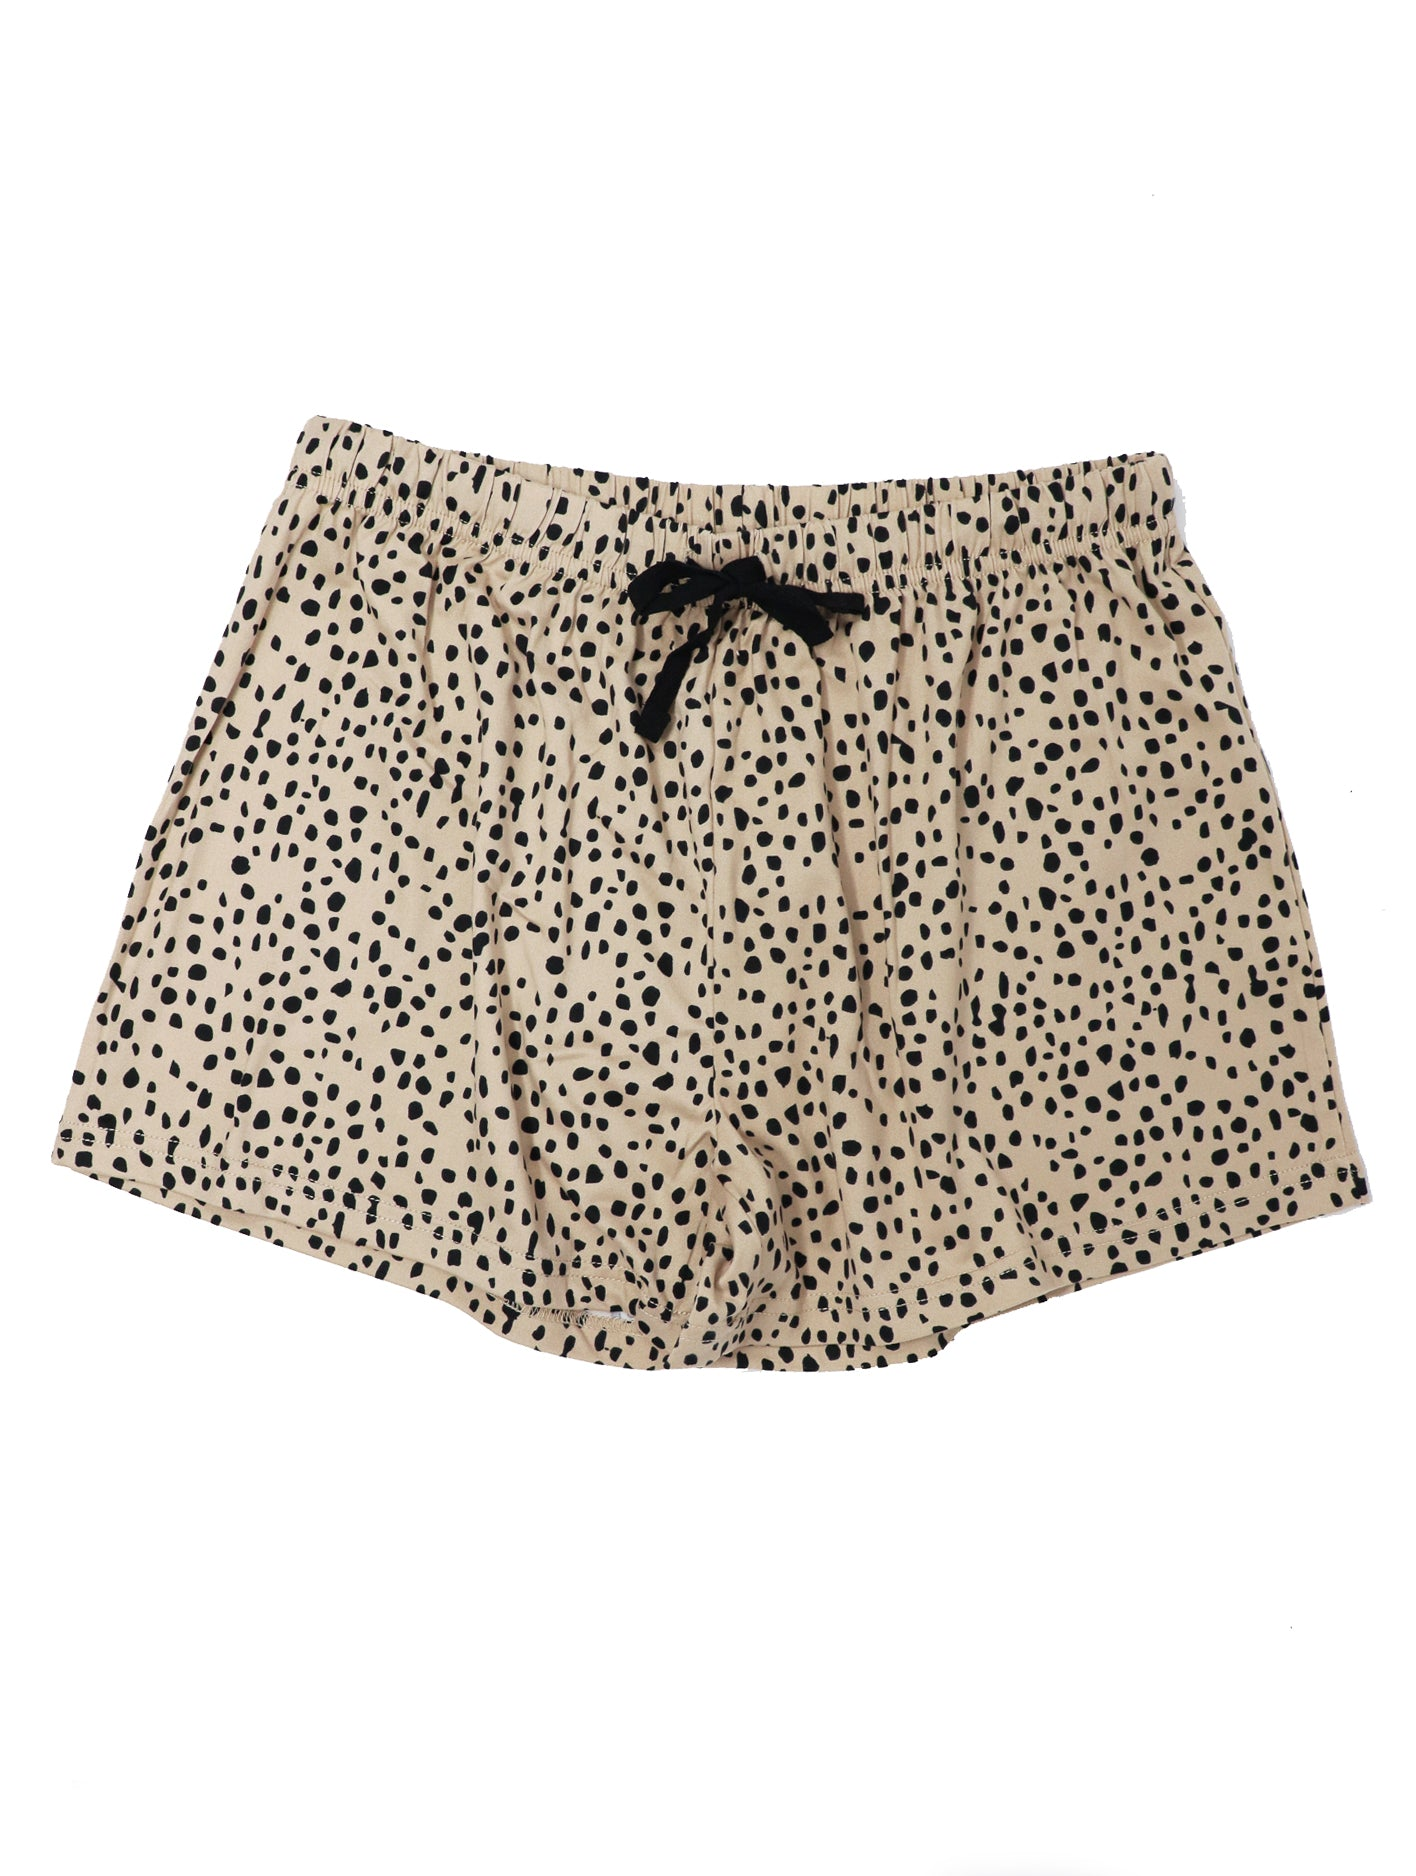 Cheetah Sleep Shorts - Gabrielle's Biloxi